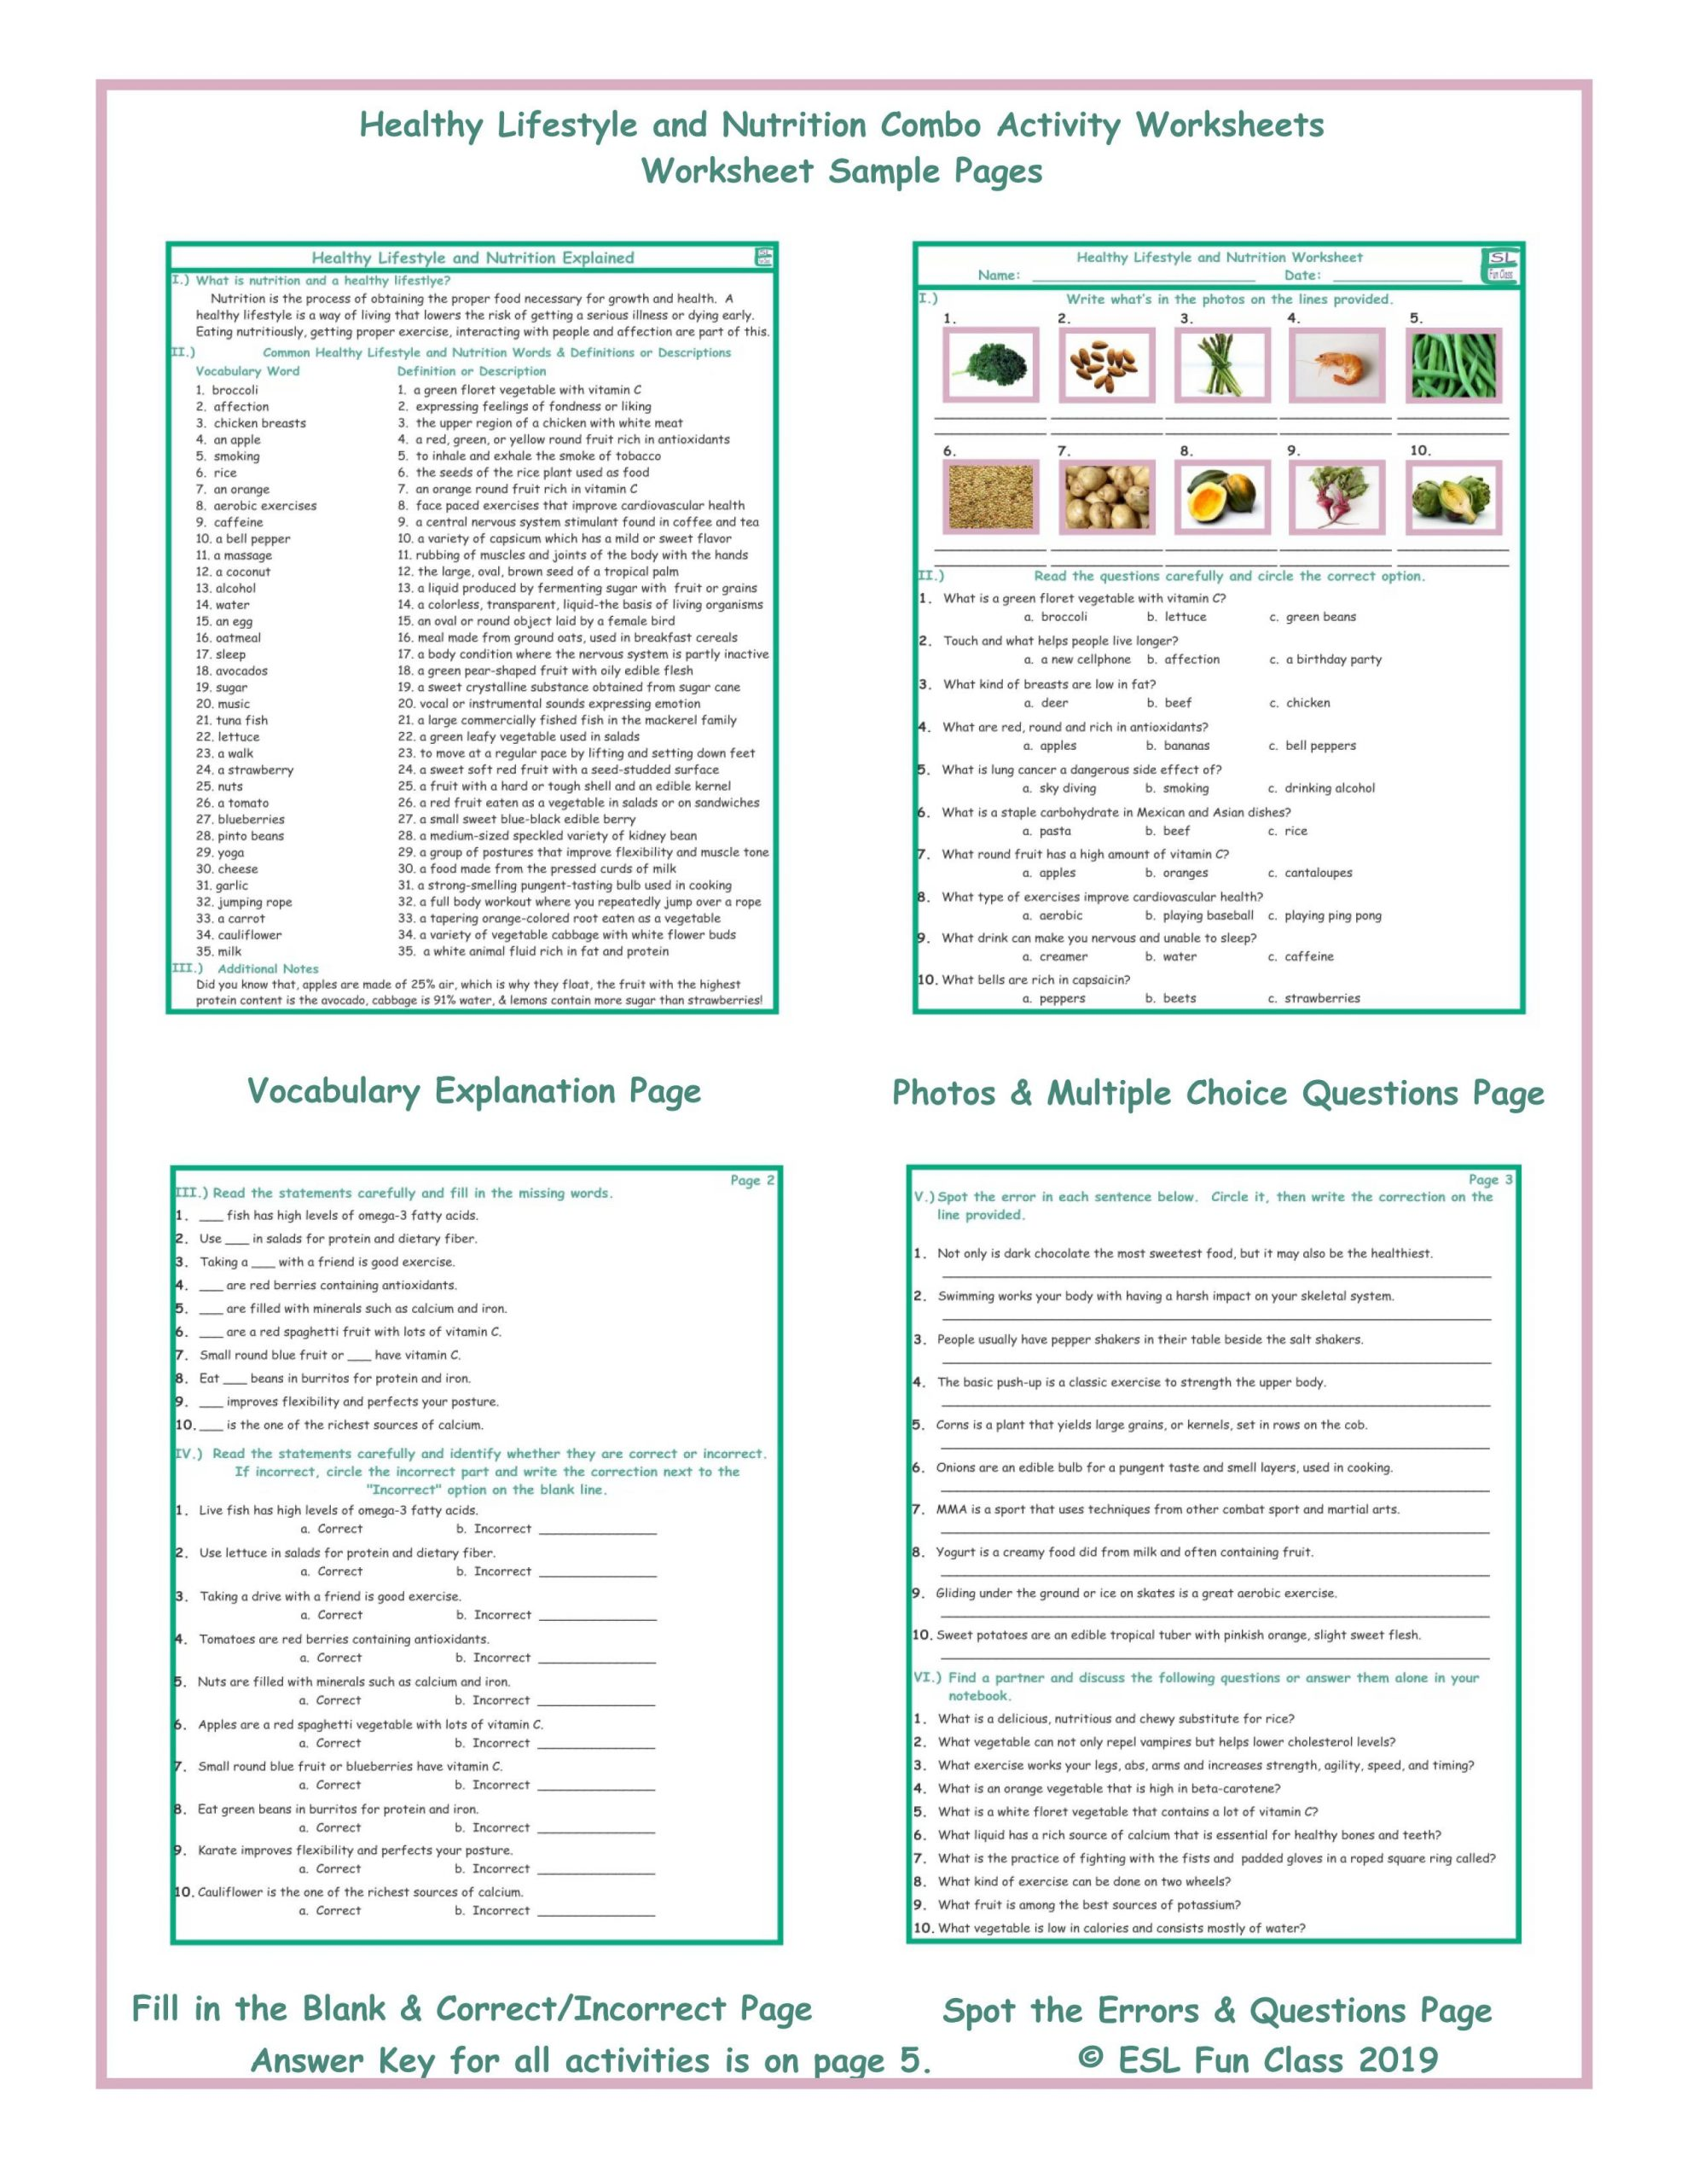 Middle School Health Worksheets Healthy Lifestyle and Nutrition Bo Activity Worksheets